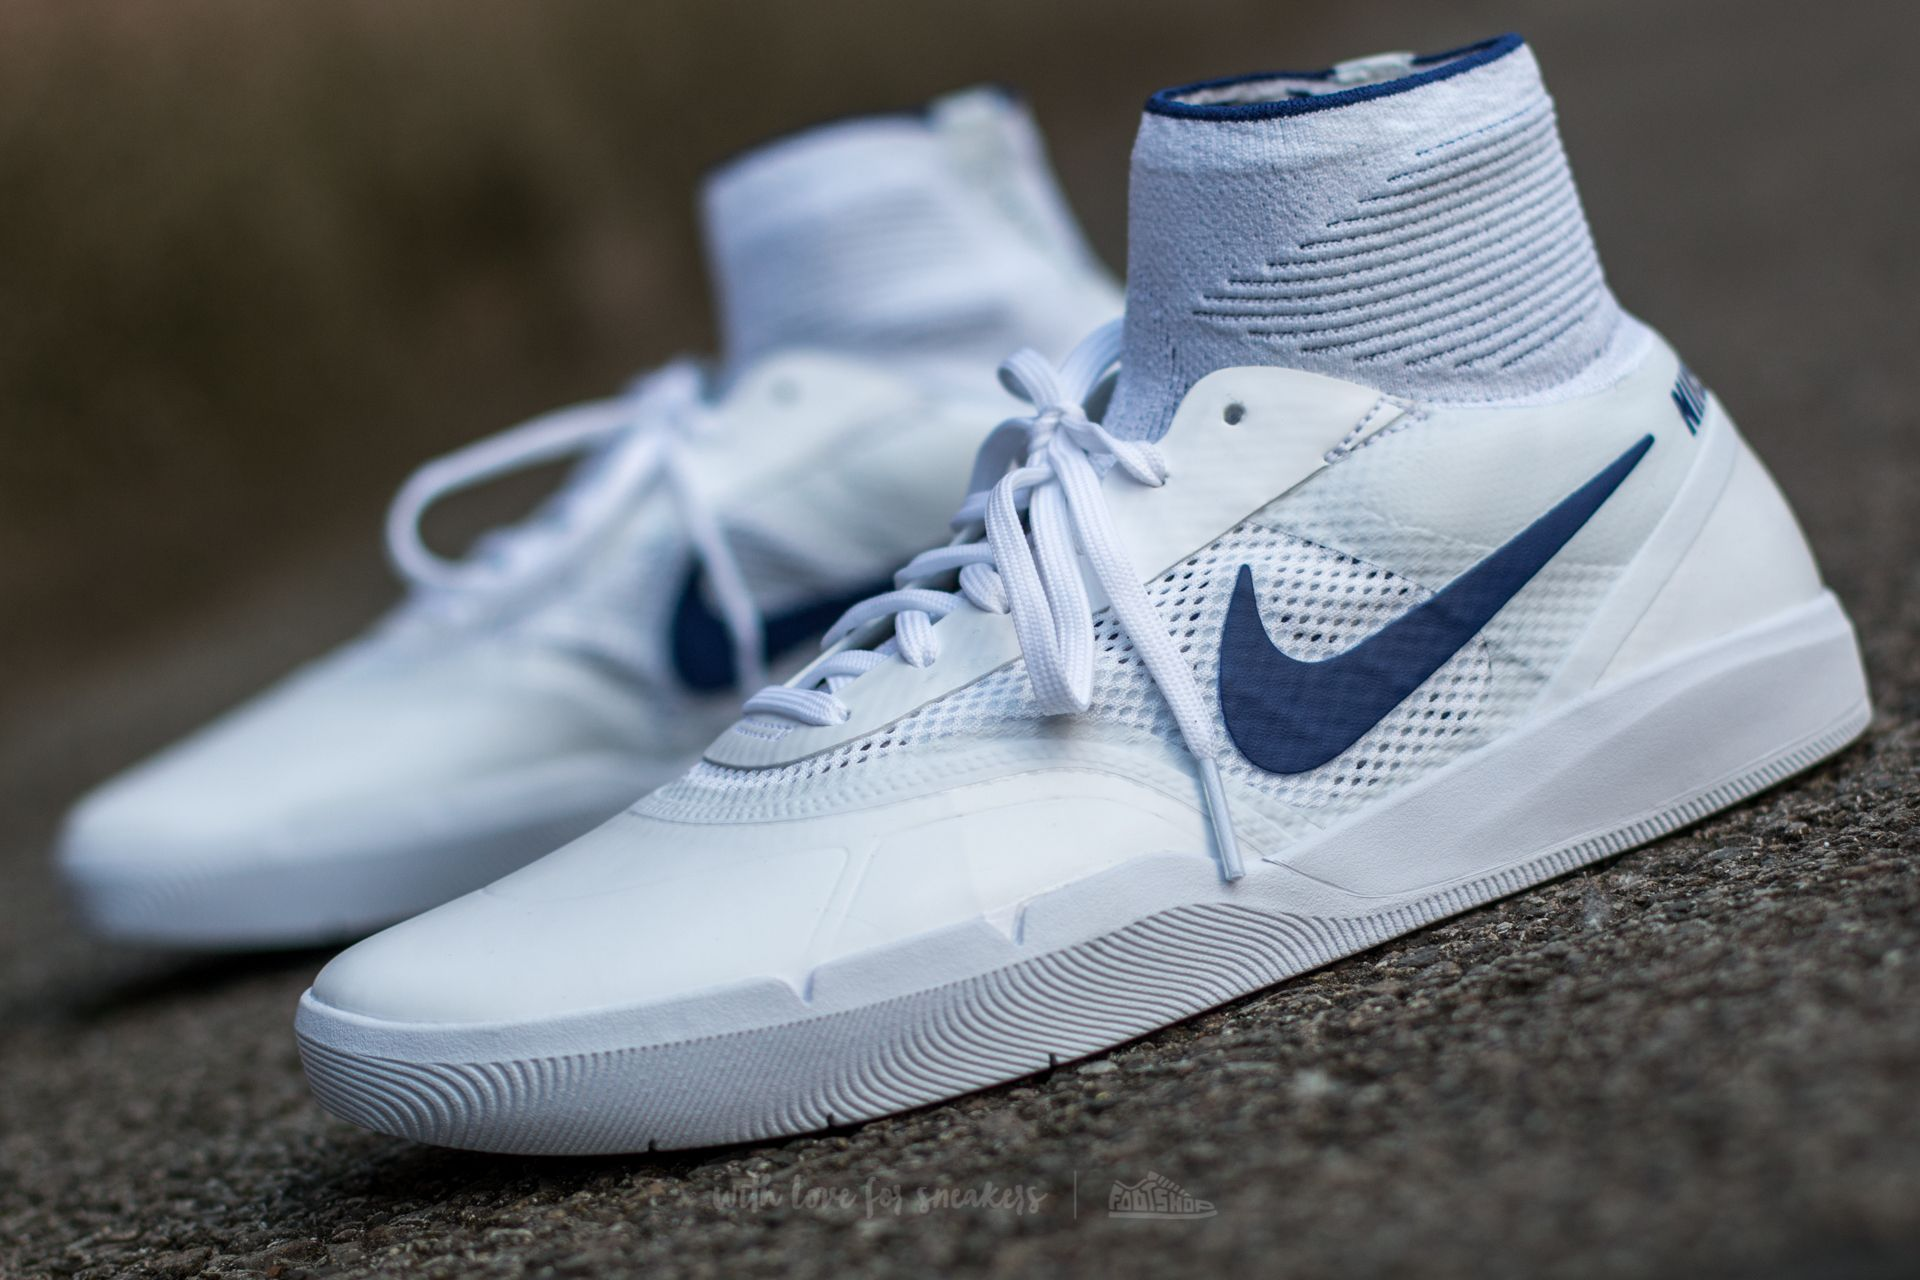 ballena Pólvora Empotrar  Men's shoes Nike SB Hyperfeel Koston 3 White/ Deep Royal Blue | Footshop